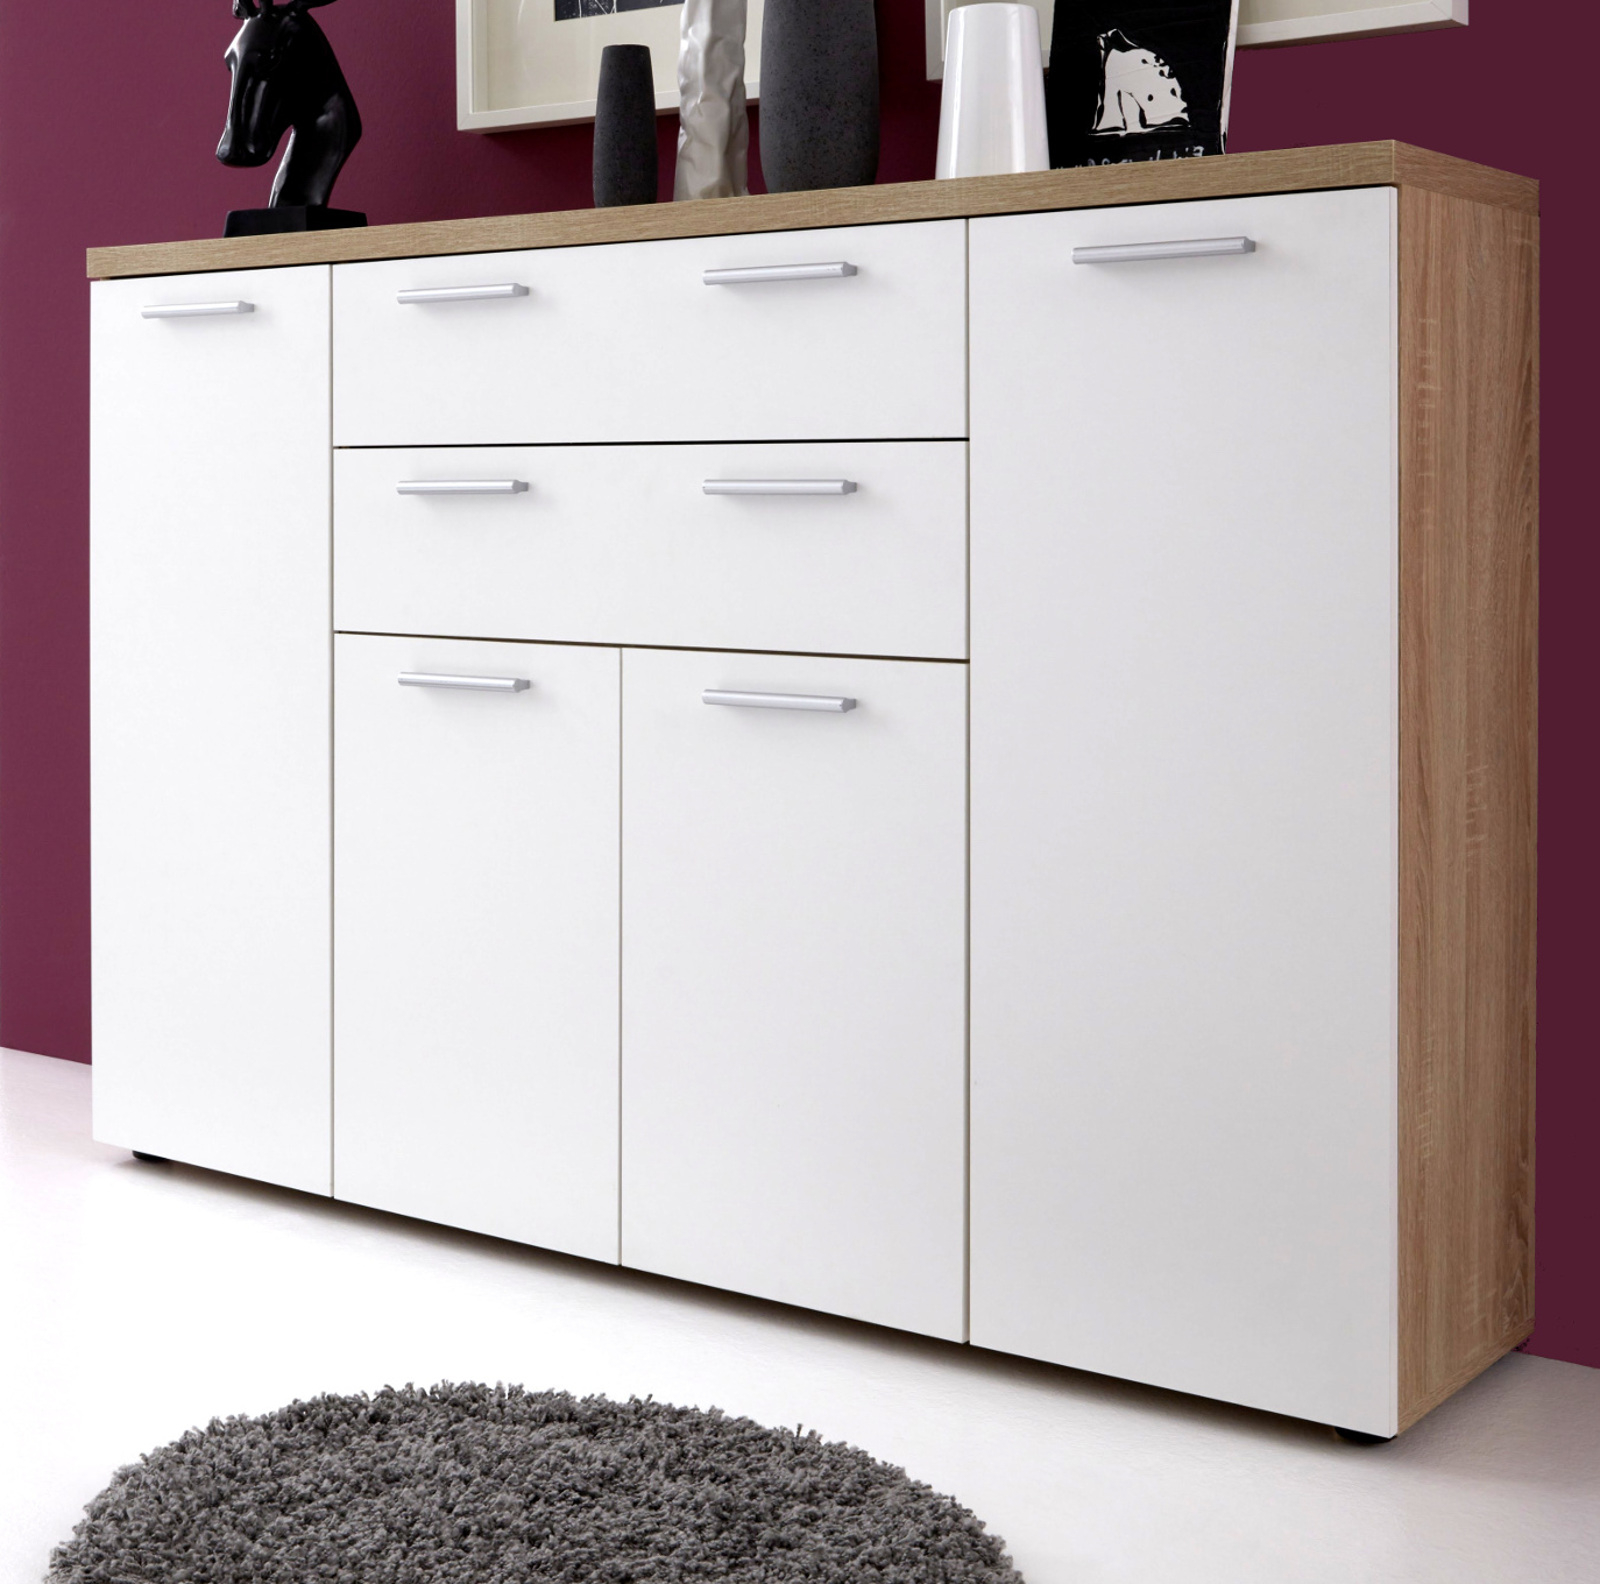 kommode sideboard wei und eiche s gerau hell. Black Bedroom Furniture Sets. Home Design Ideas